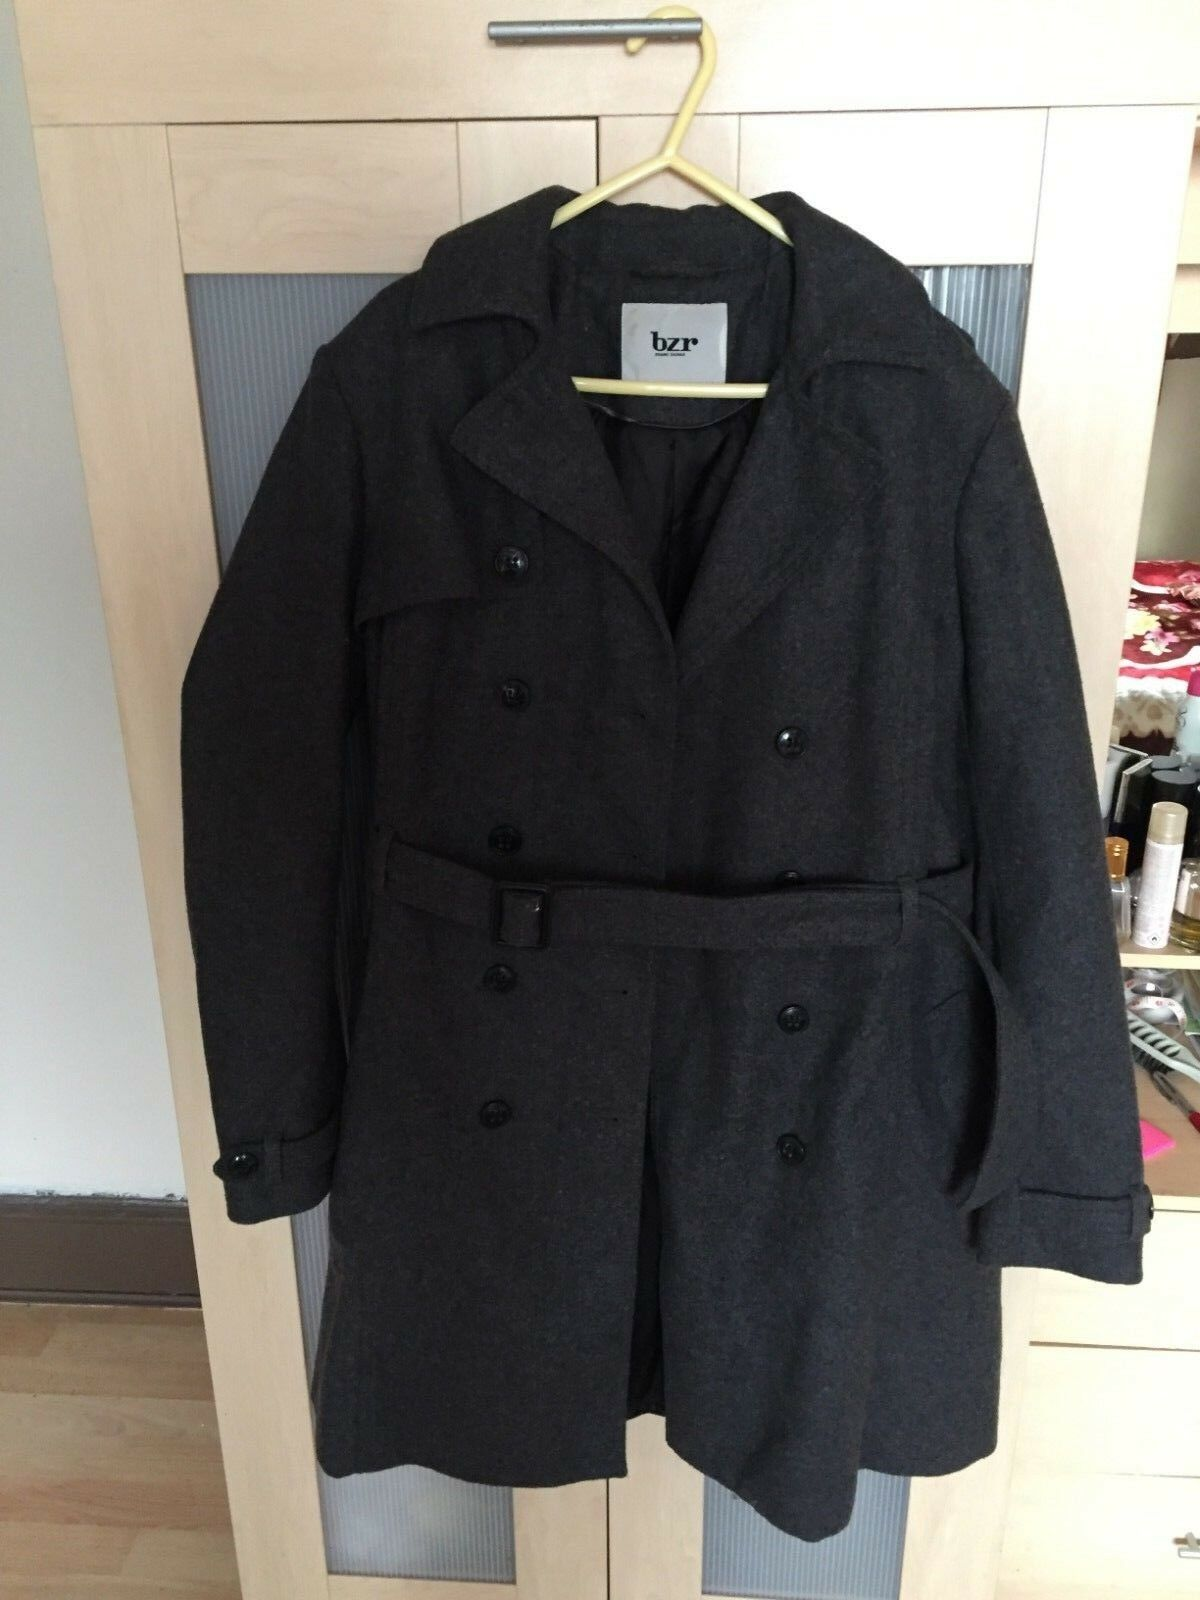 Ladies BZR Bruuns Bazaar winter long coat 80% wool RRP